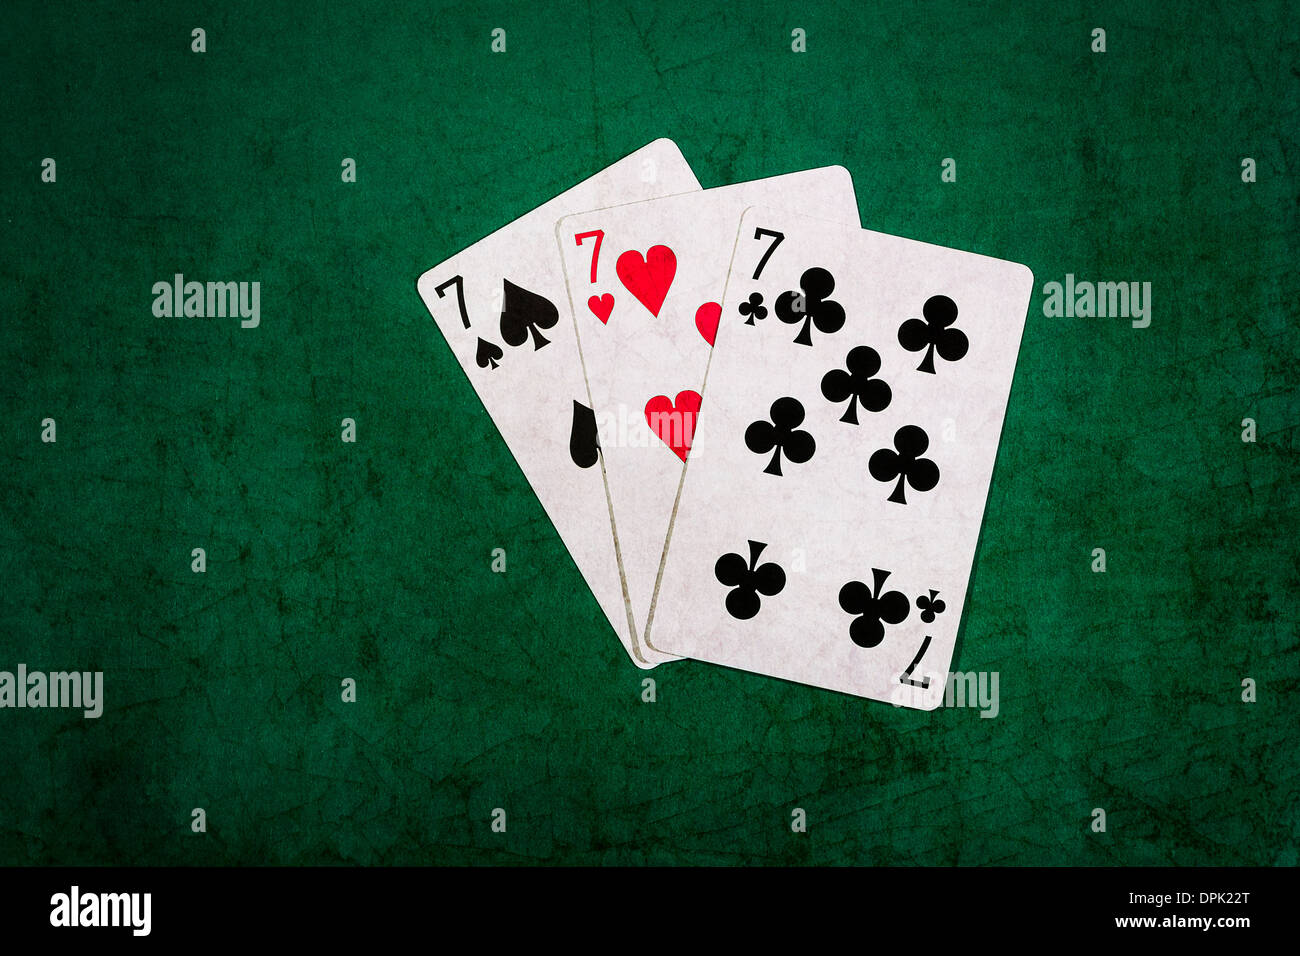 Twenty One 12. Closeup view of playing cards forming the blackjack combination of twenty one points - Stock Image